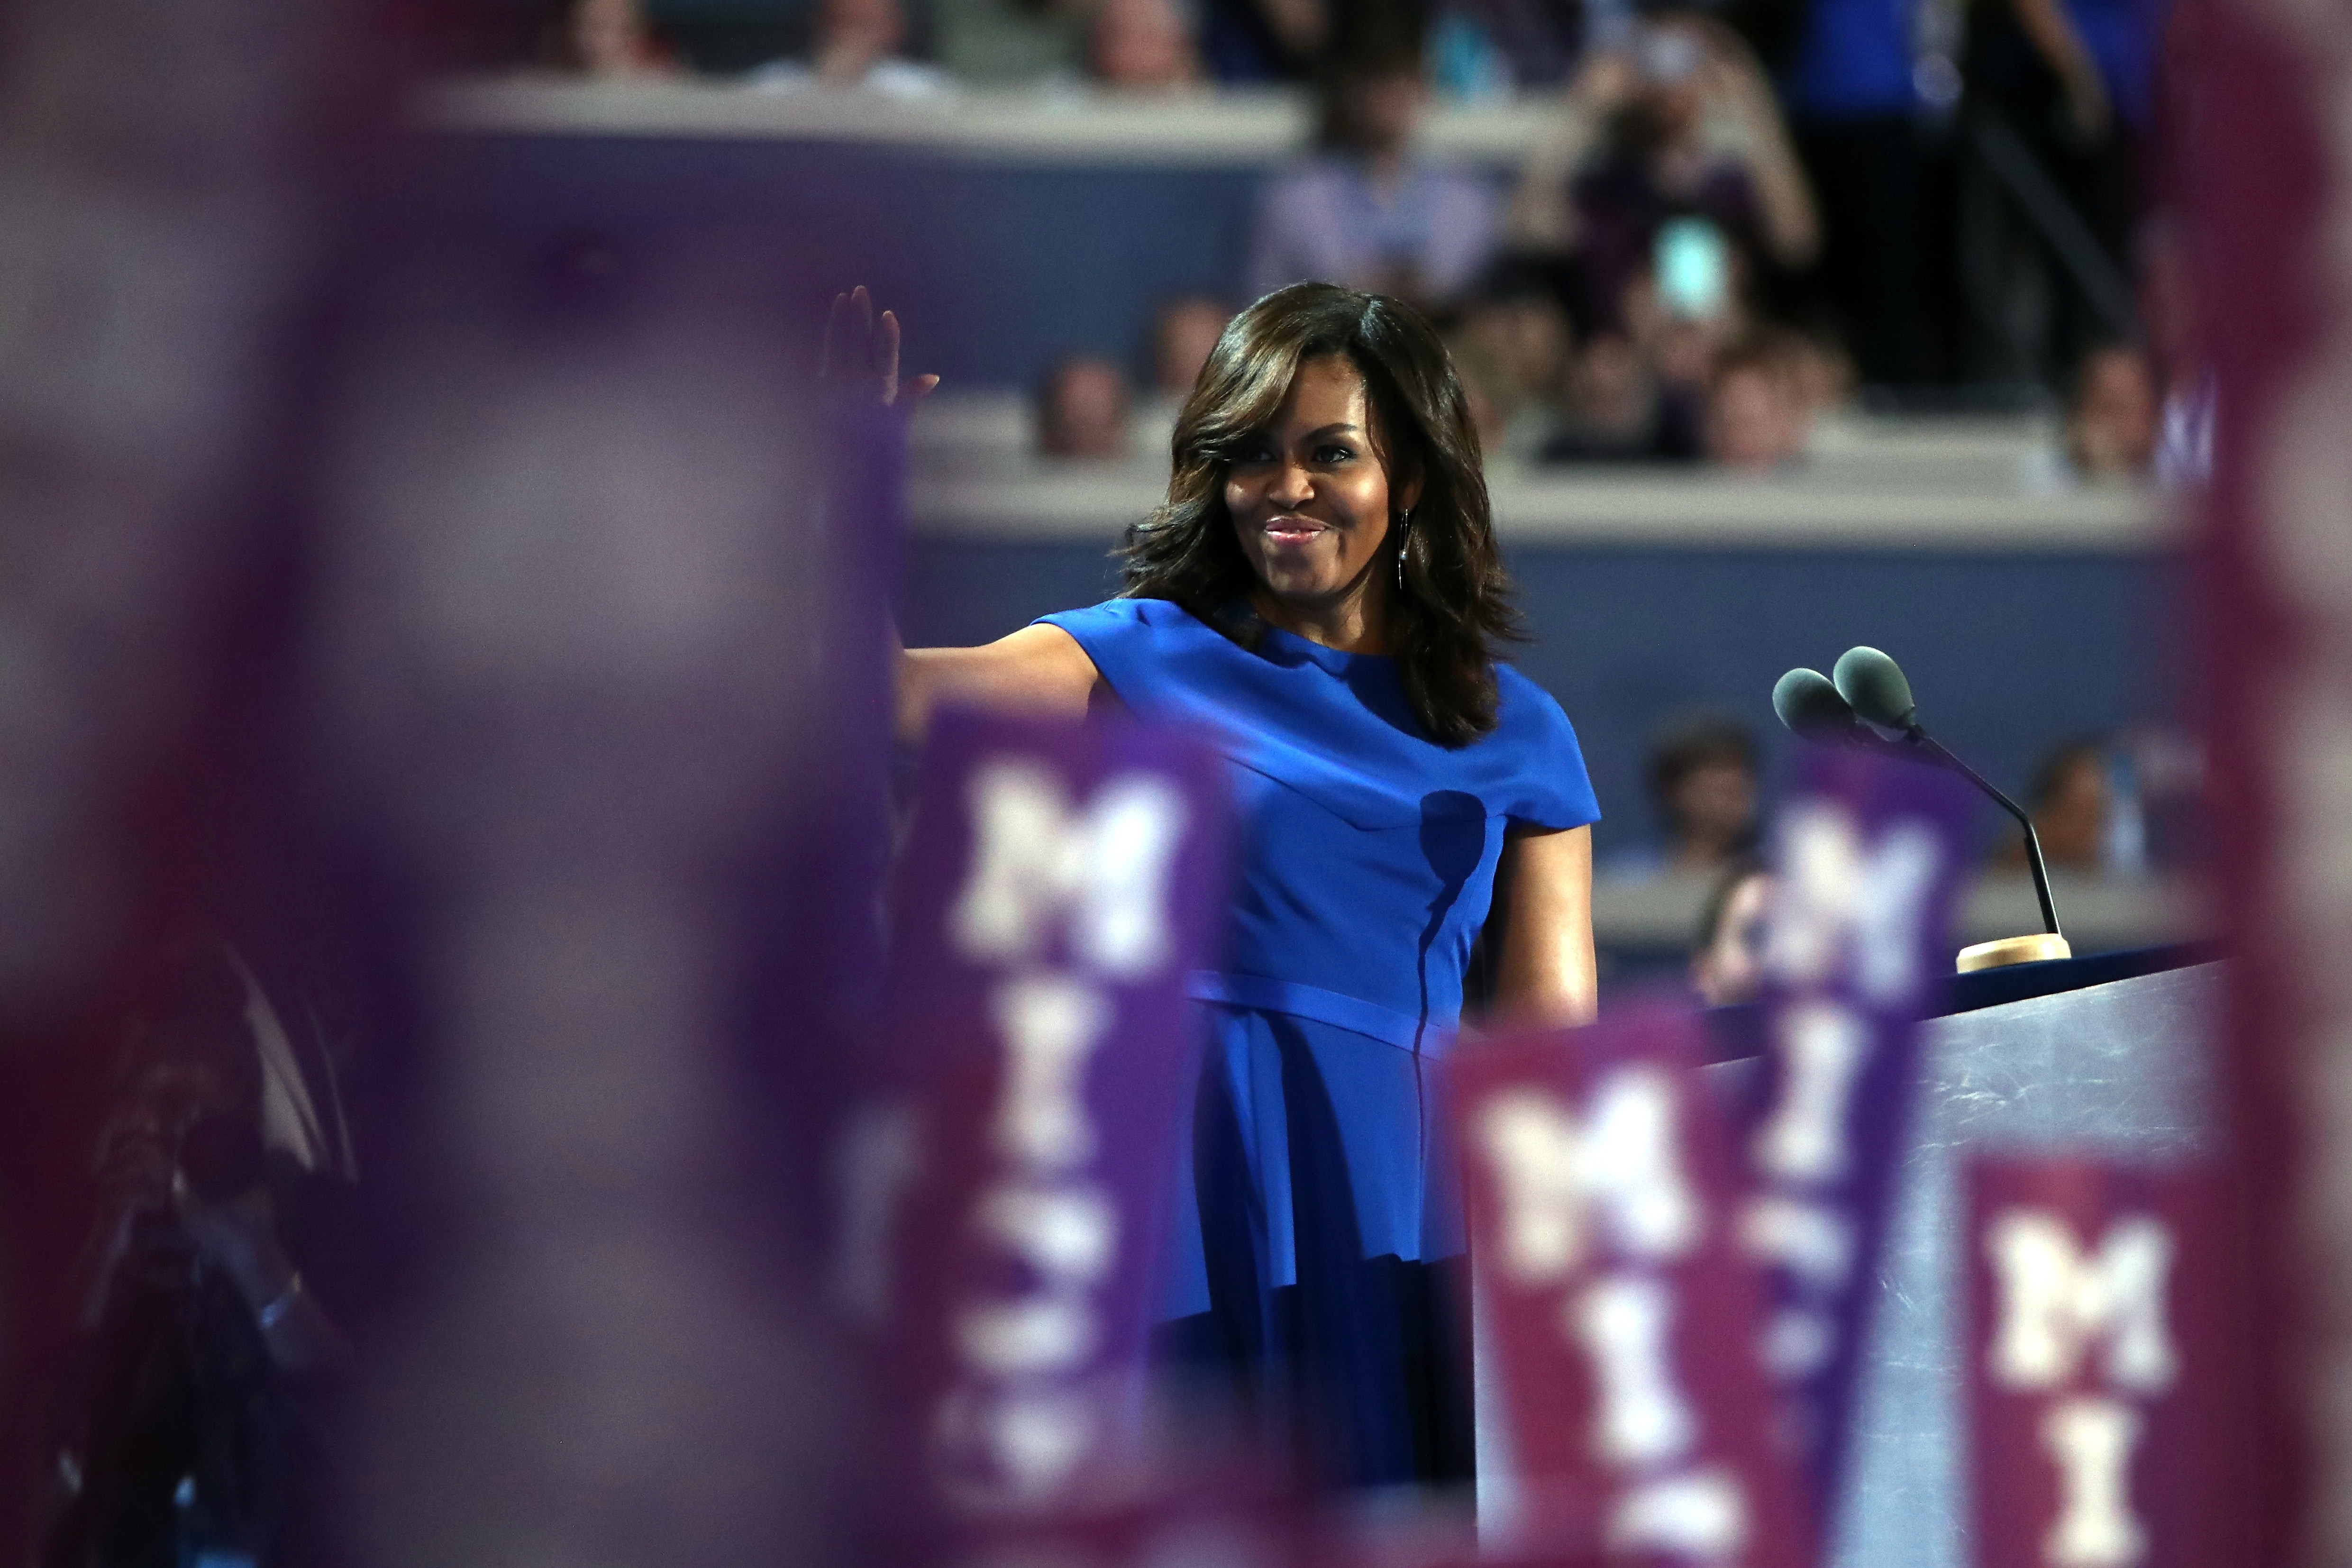 First lady Michelle Obama waves to the crowd before speaking to the Democratic National Convention. She offered strong takedown of Trump and heartfelt endorsement of Clinton.